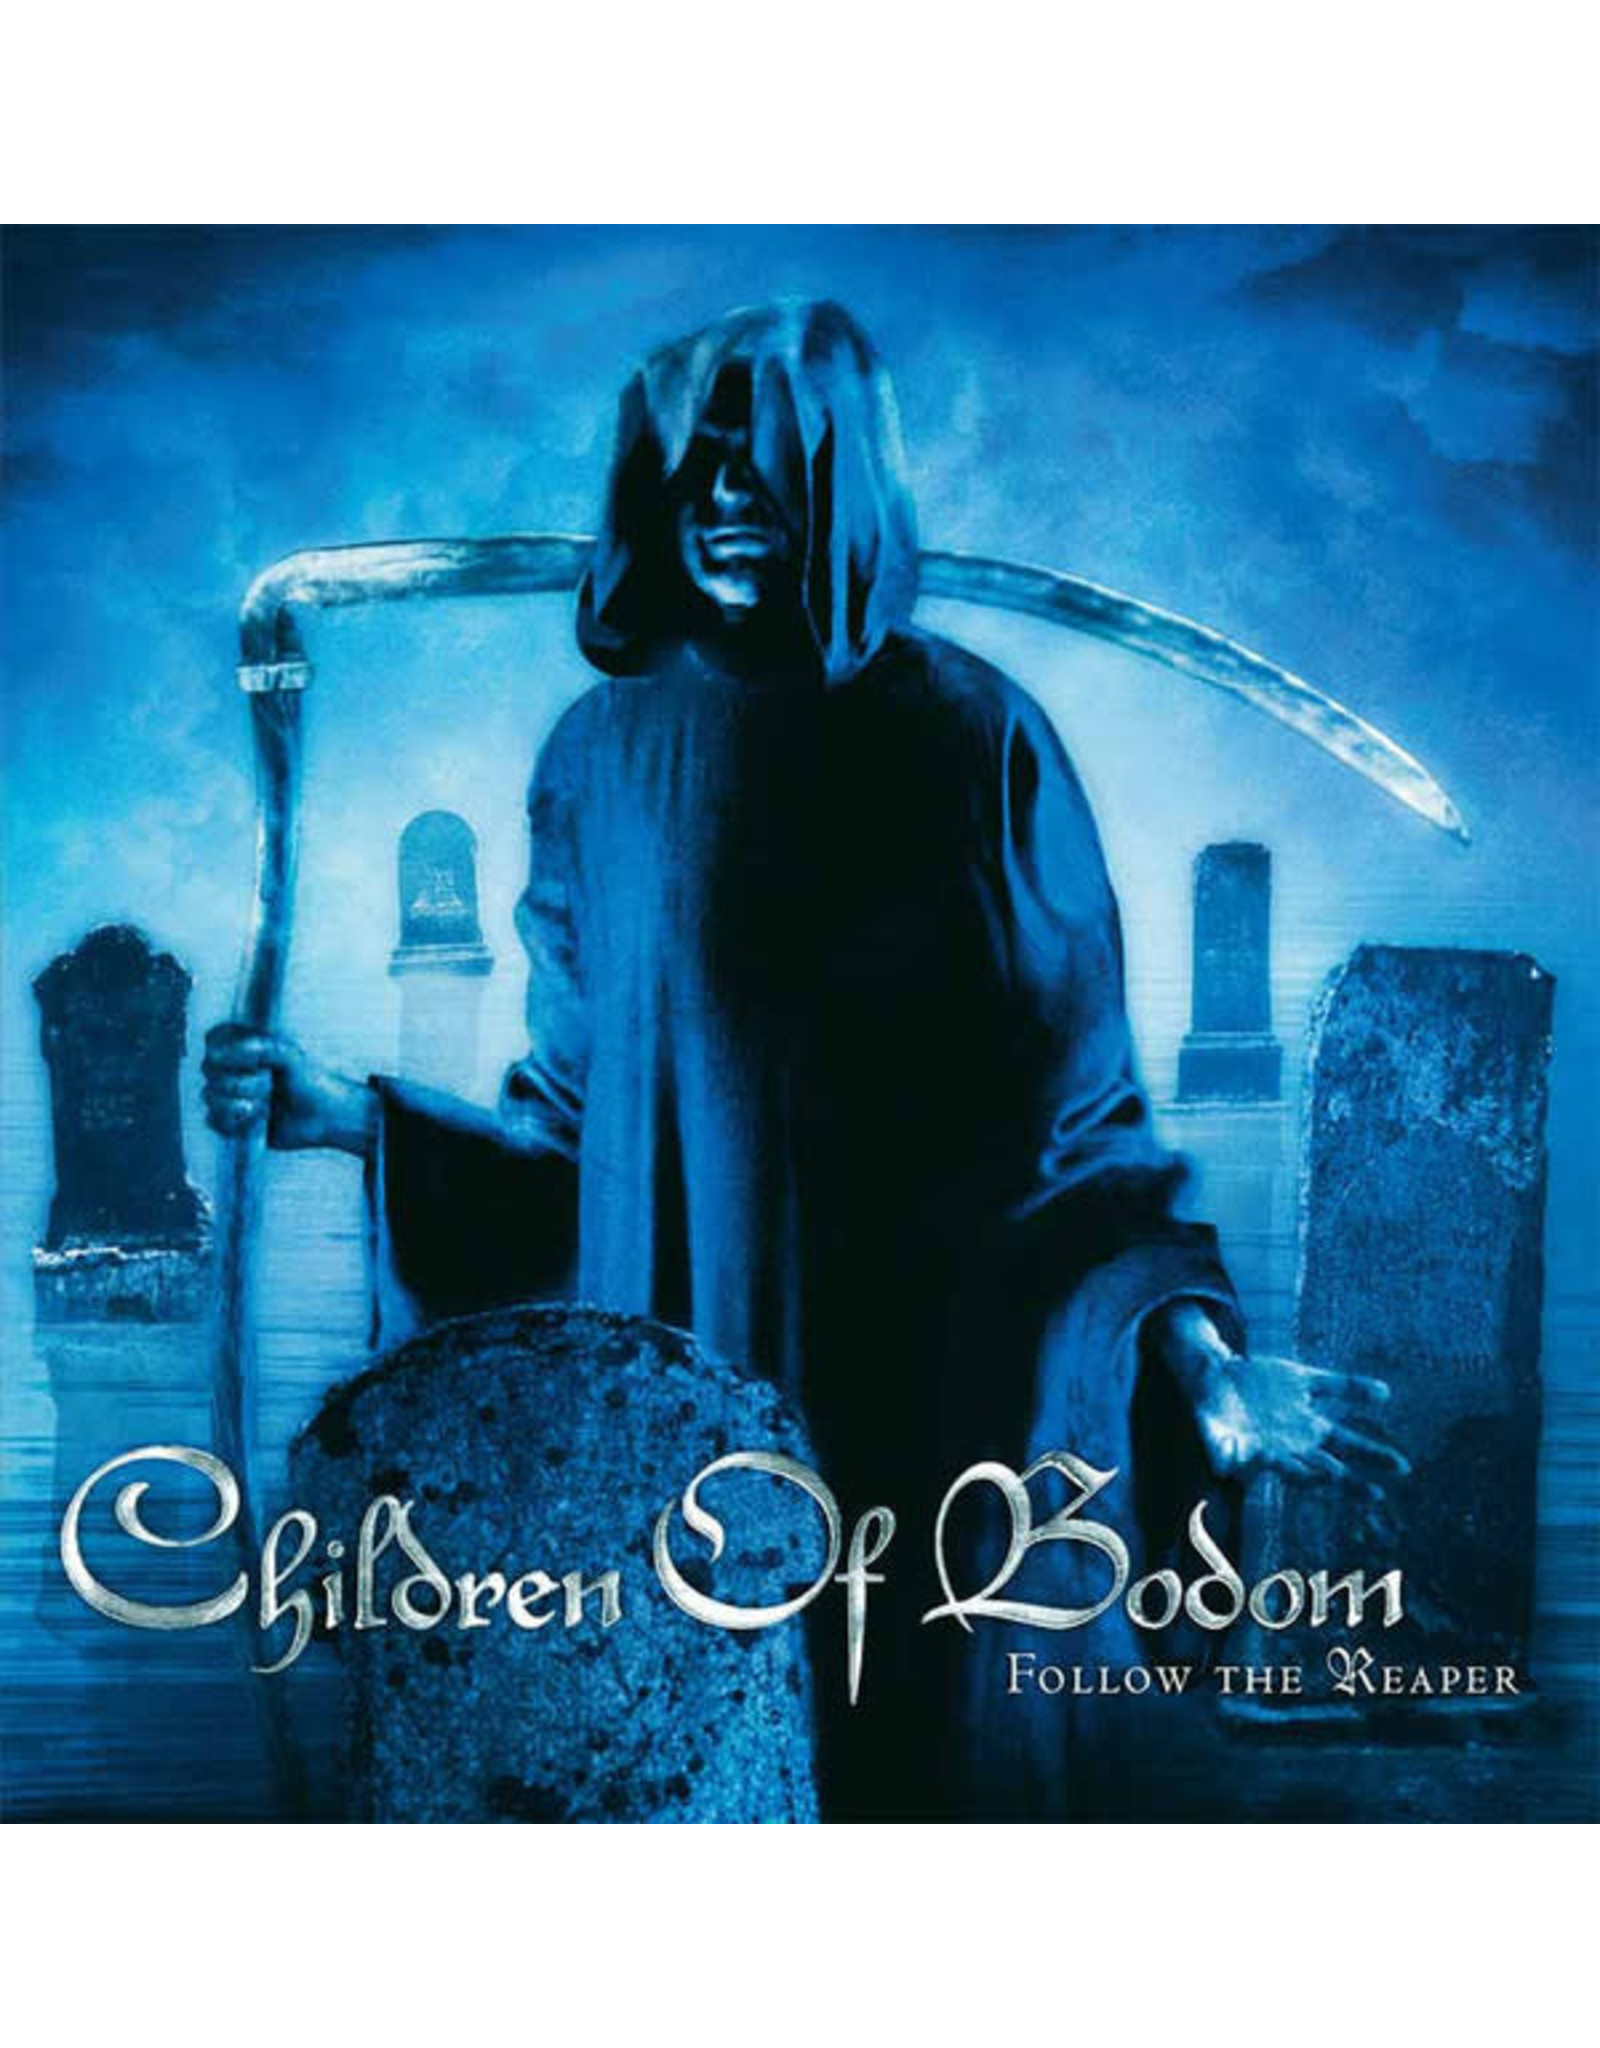 New Vinyl Children Of Bodom - Follow The Reaper (Colored) 2LP